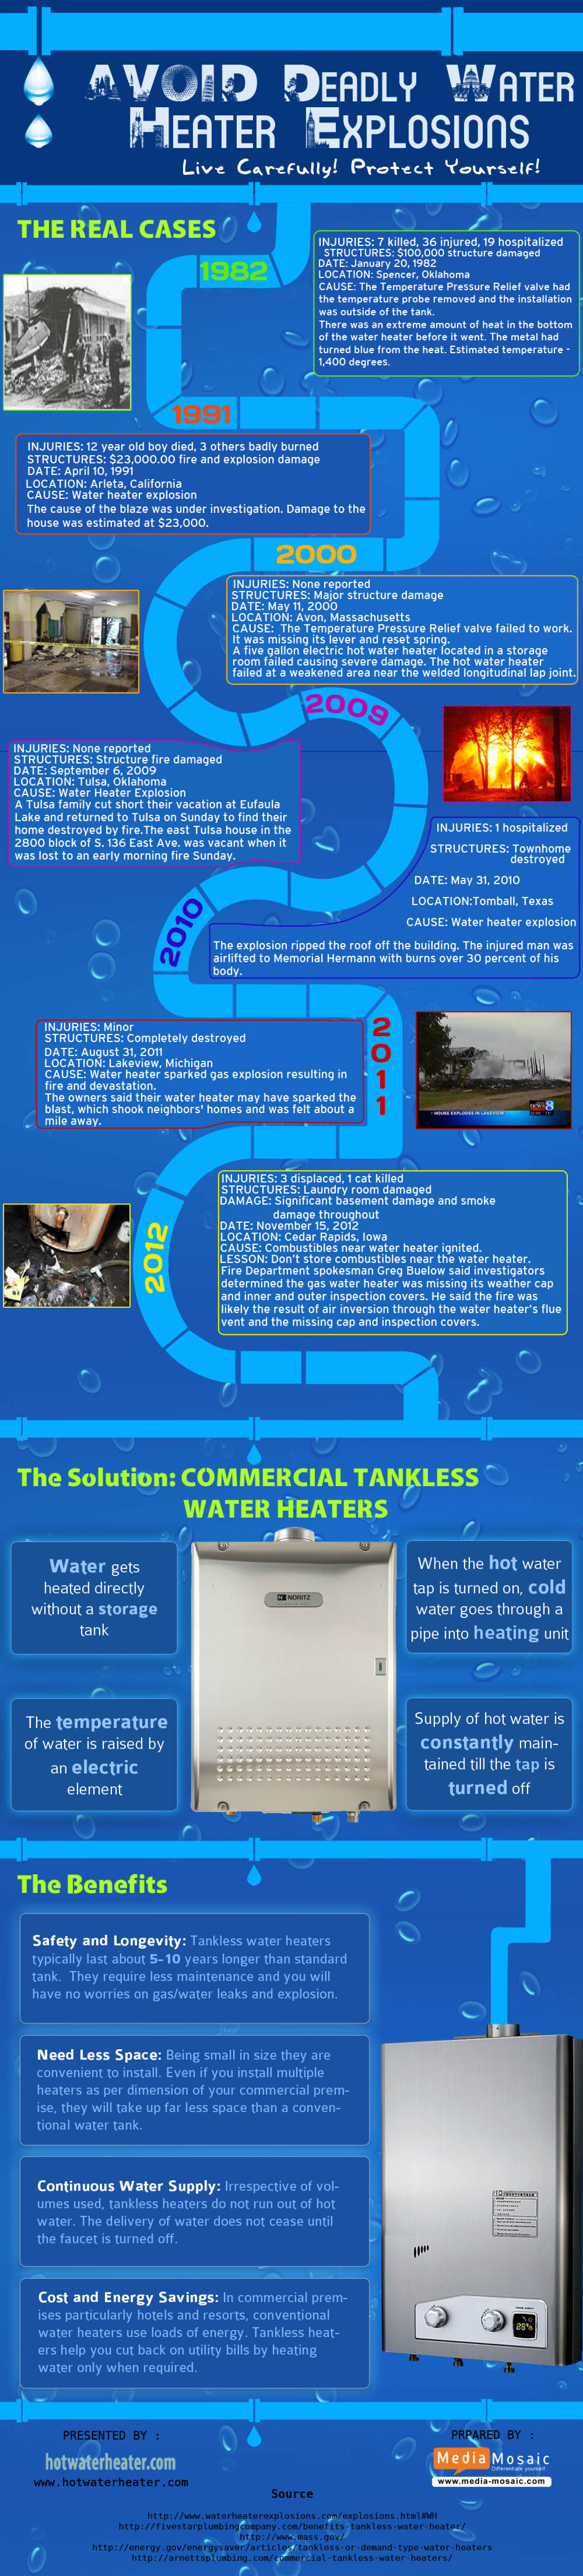 Avoid Deadly Water Heater Explosions Infographic